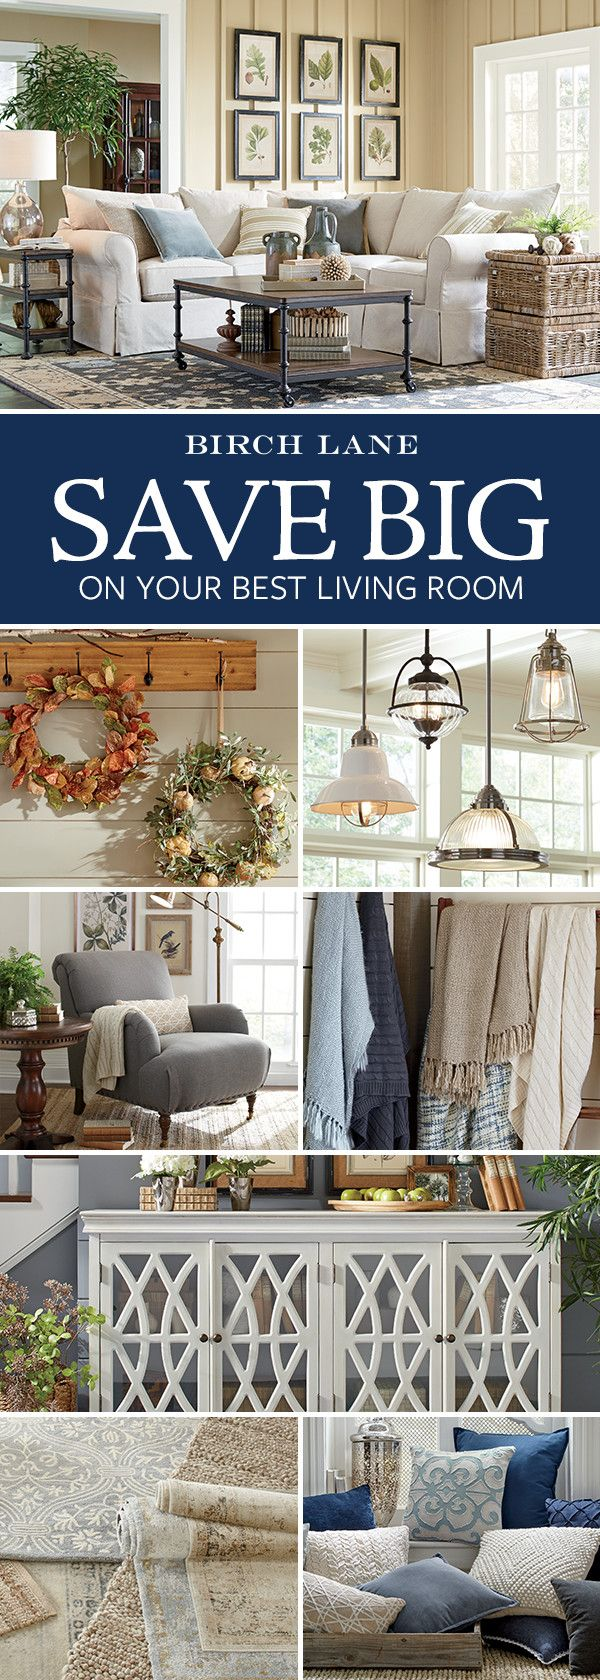 Whether you're moving in for the first time or just ready to give your space a refresh, everything you need for the living room is here – all in one place. Sofas. Sectionals. Tables. Lighting. Plus rugs (to layer) and pillows, throws, and art (for that final flourish). Sign up and learn more. Shop by Room for the living room at Birchlane.com and enjoy Free Shipping on all orders over $49.